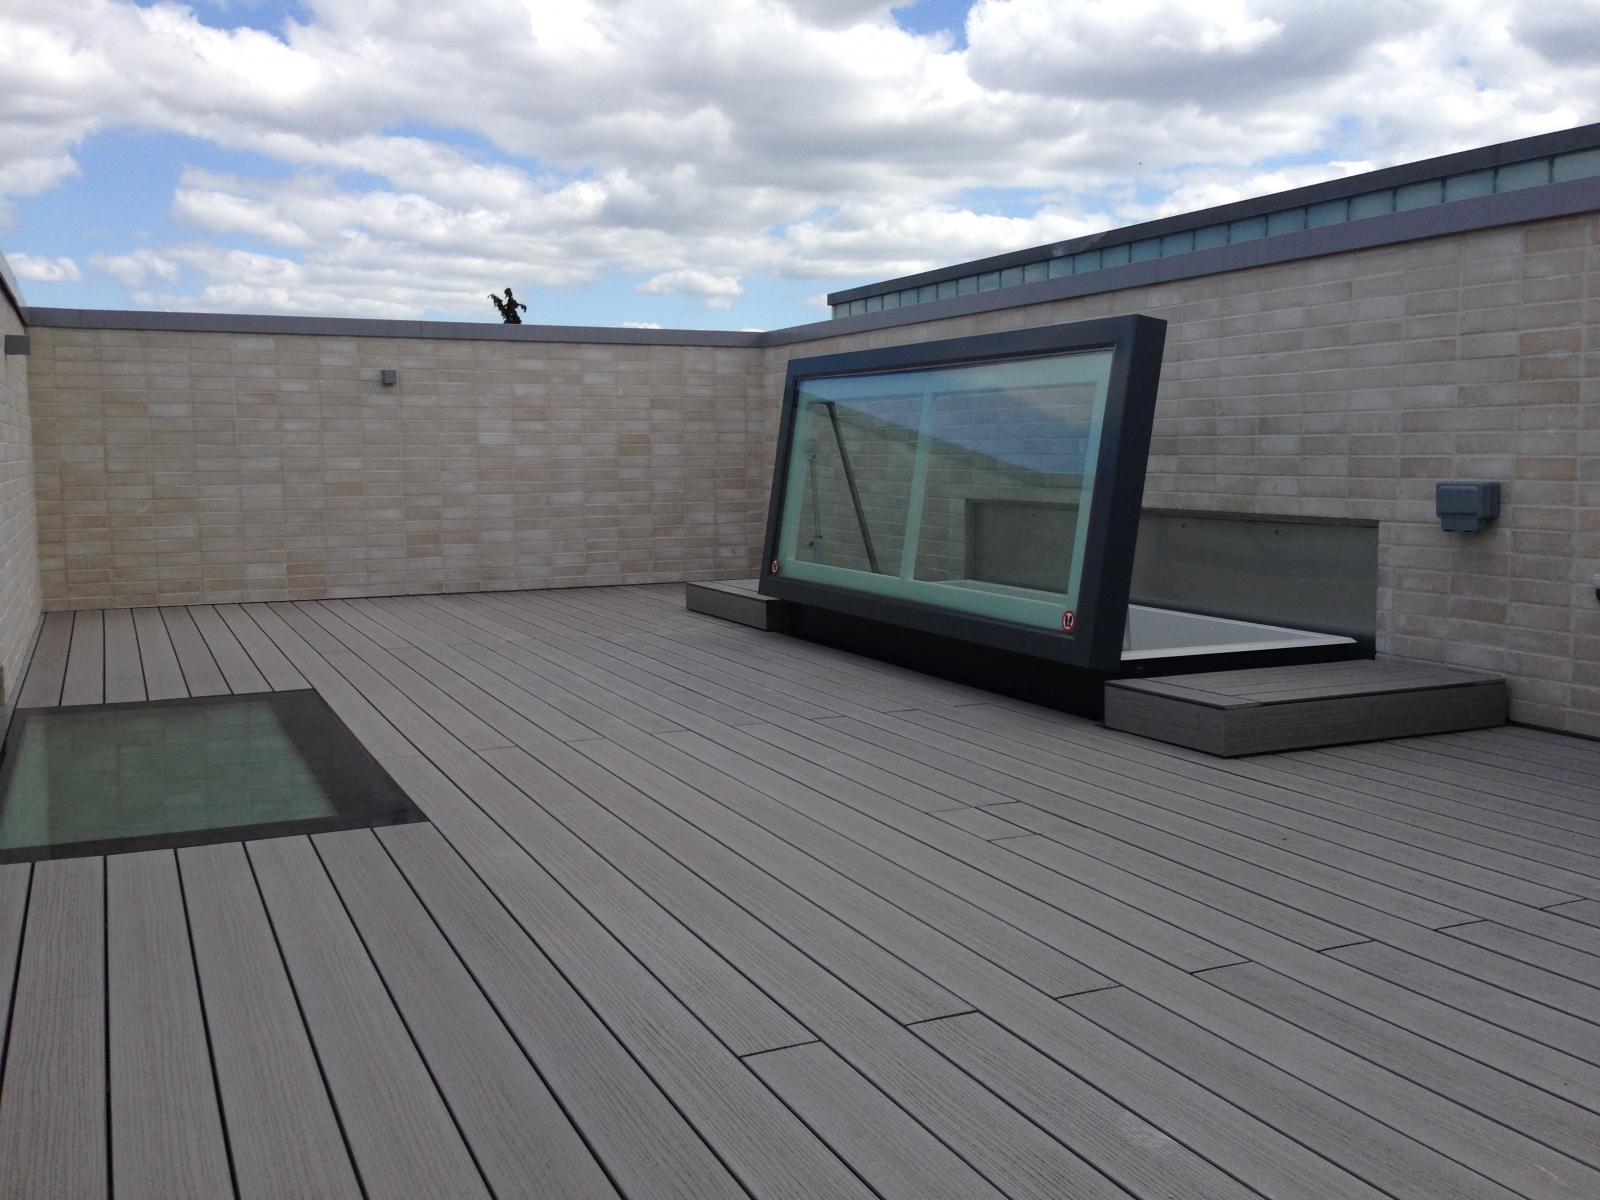 Home roof access glazed roof hatch glazed roof hatch - Maintenance Of Glass Roof Access Hatches Staka S Toplight Roof Access Hatches Are Equipped With Triple Glazing